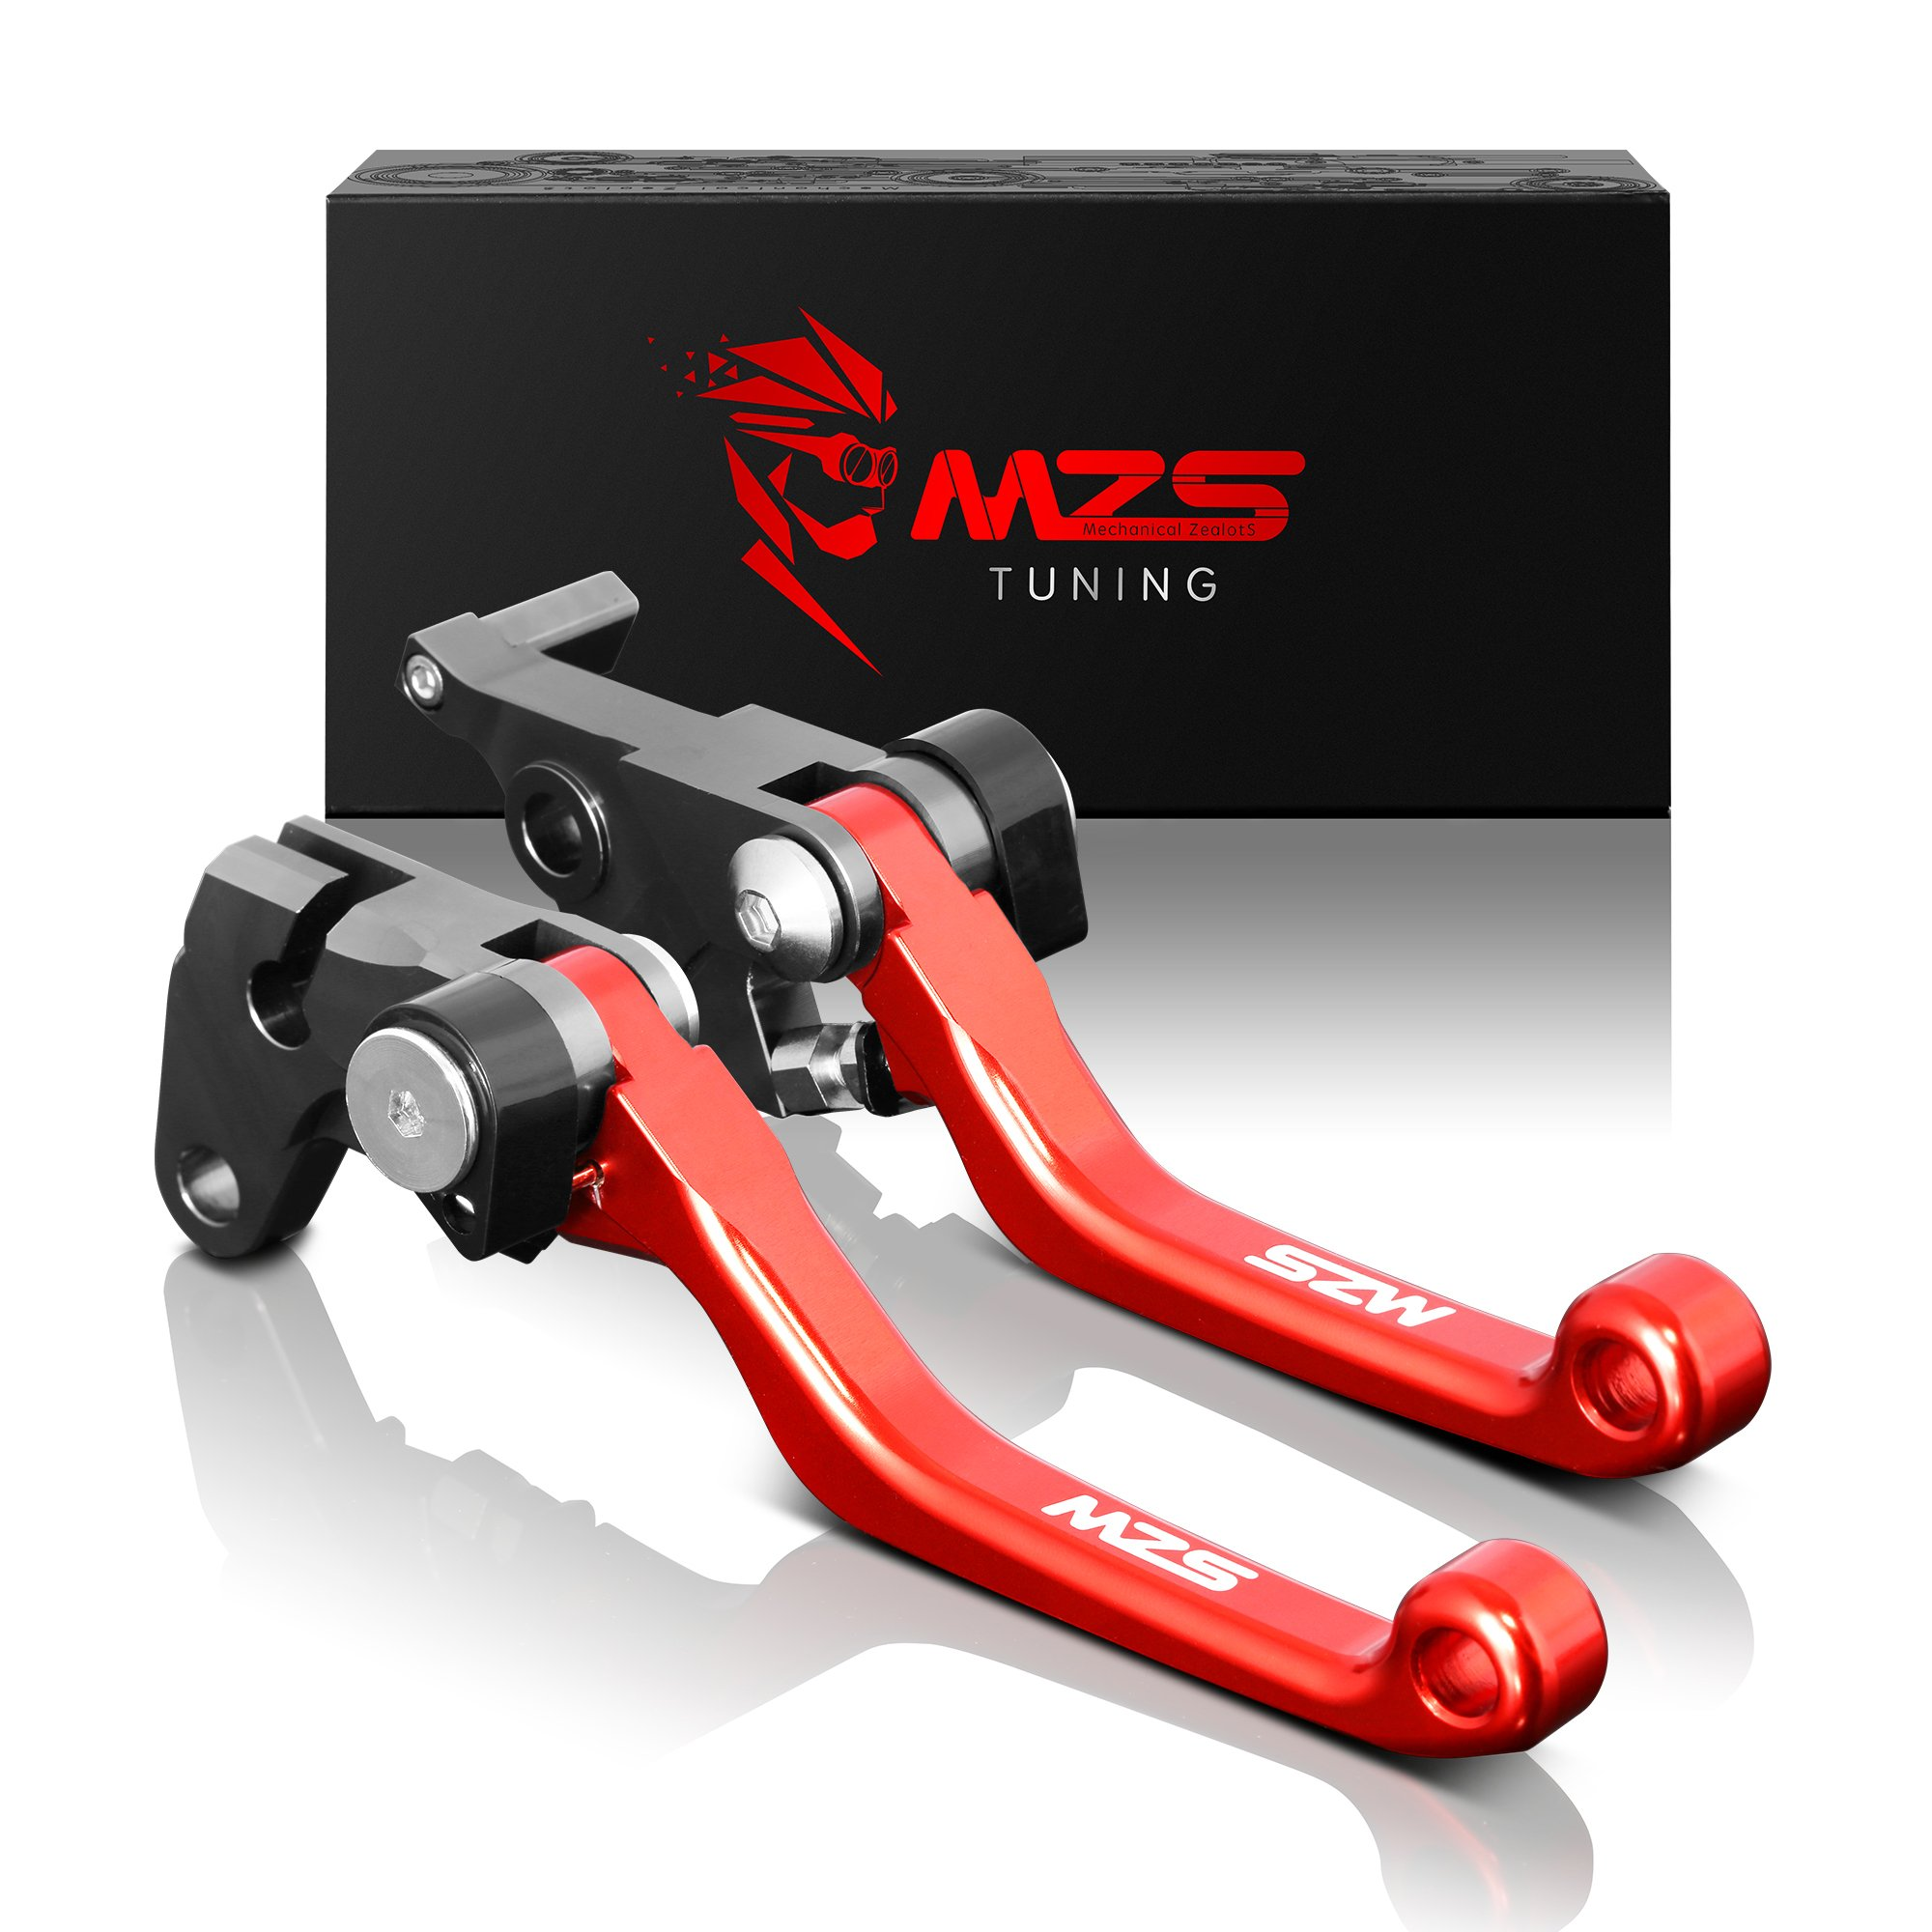 MZS Pivot Levers Brake Clutch CNC for Honda CR80R CR85R 1998-2007/ CR125R CR250R 1992-2003/ CRF125F 2014-2018/ CRF150R 2007-2018/ CRF450R 2002-2003/ CR500R 1992-2001/ XR650R 2000-2006 (Red)